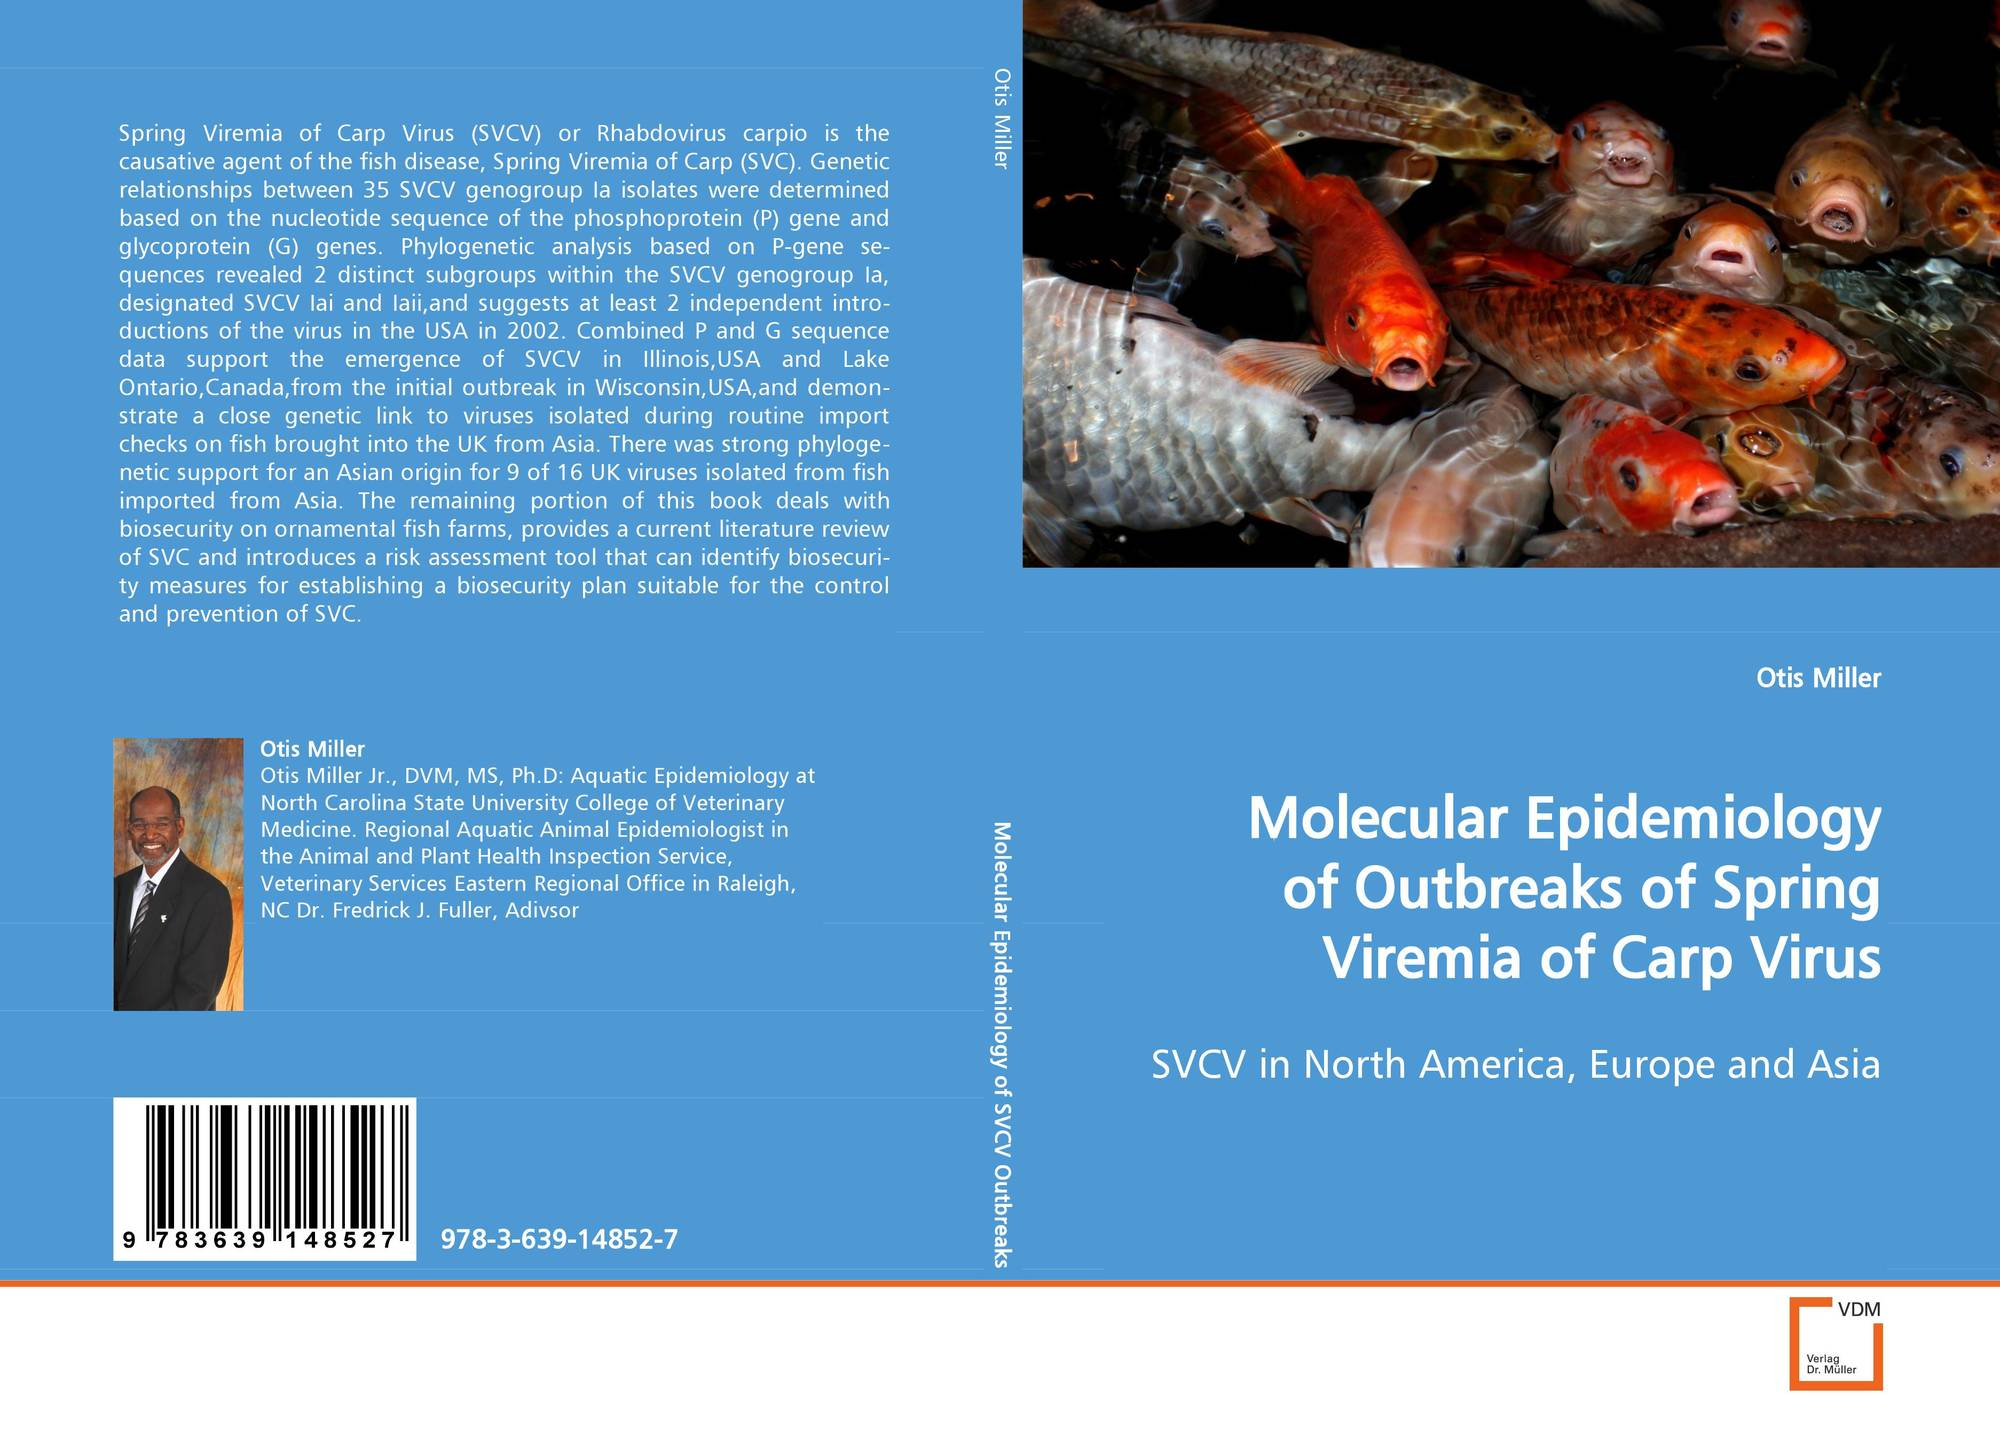 Molecular Epidemiology of Outbreaks of Spring Viremiaof Carp